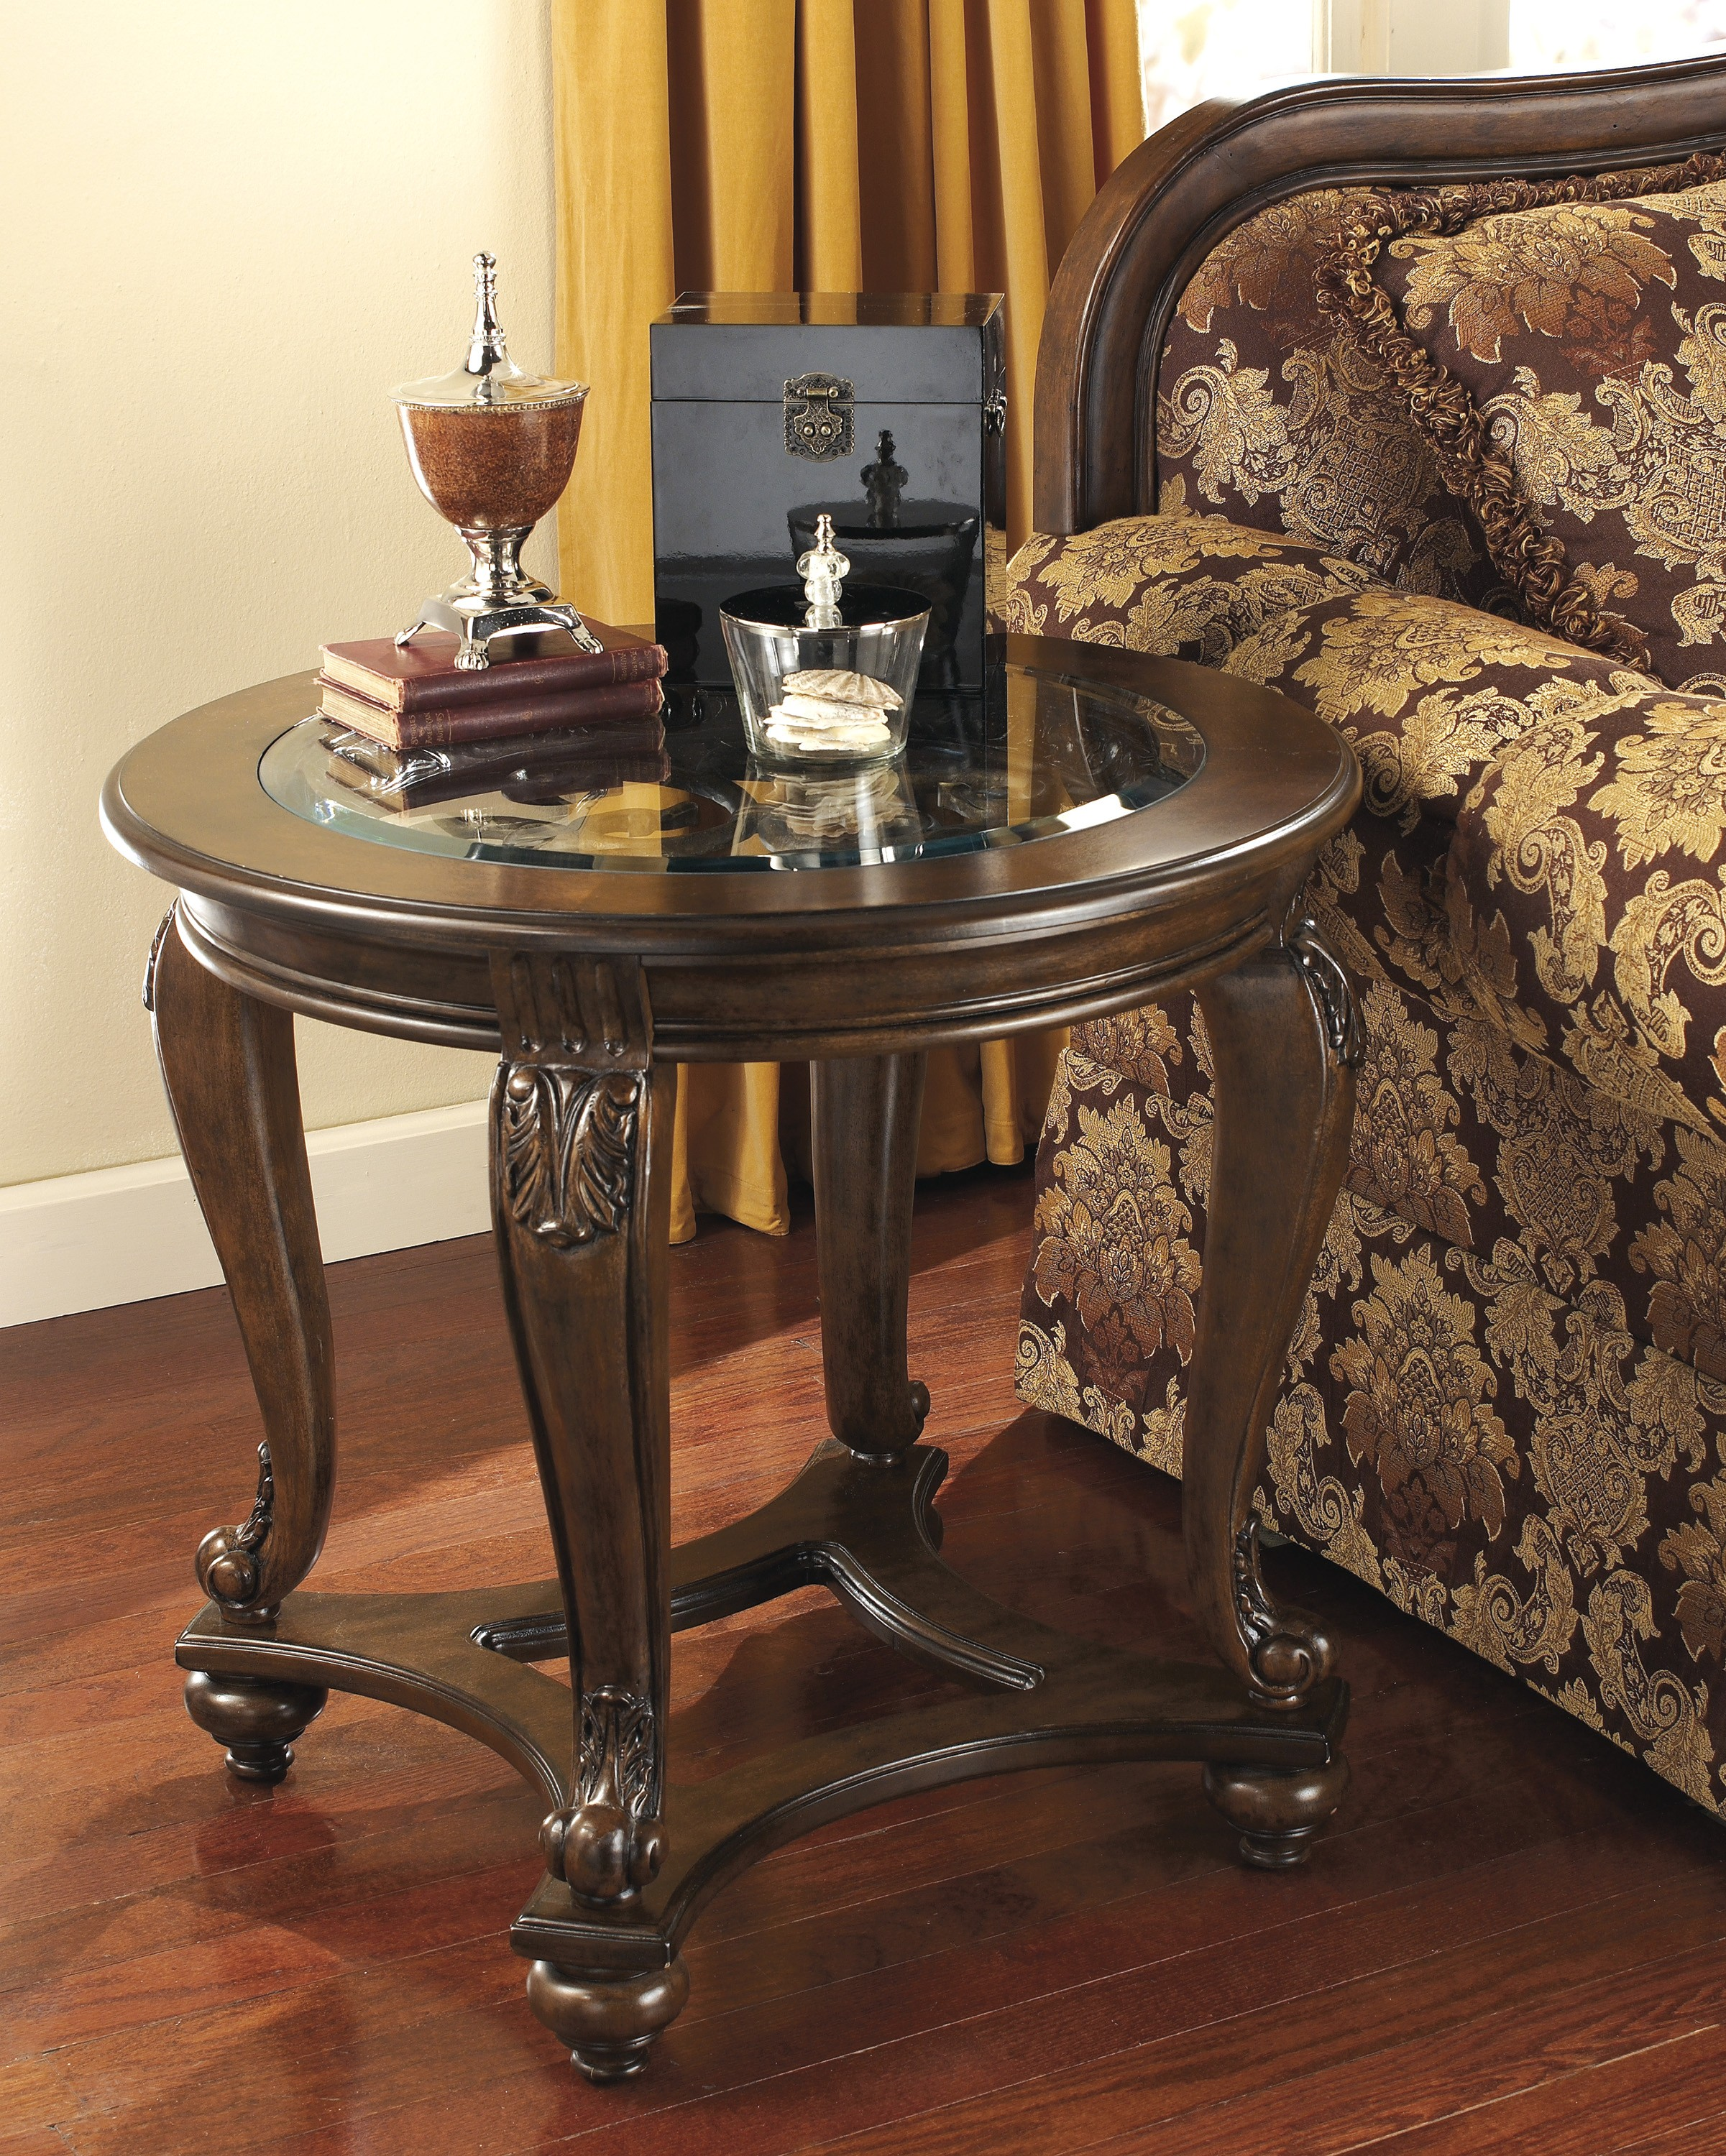 ashley furniture norcastle round end table dark brown new home wood accent sofa tray ikea counter height kitchen and chairs cherry dining room pottery barn corner desk autumn